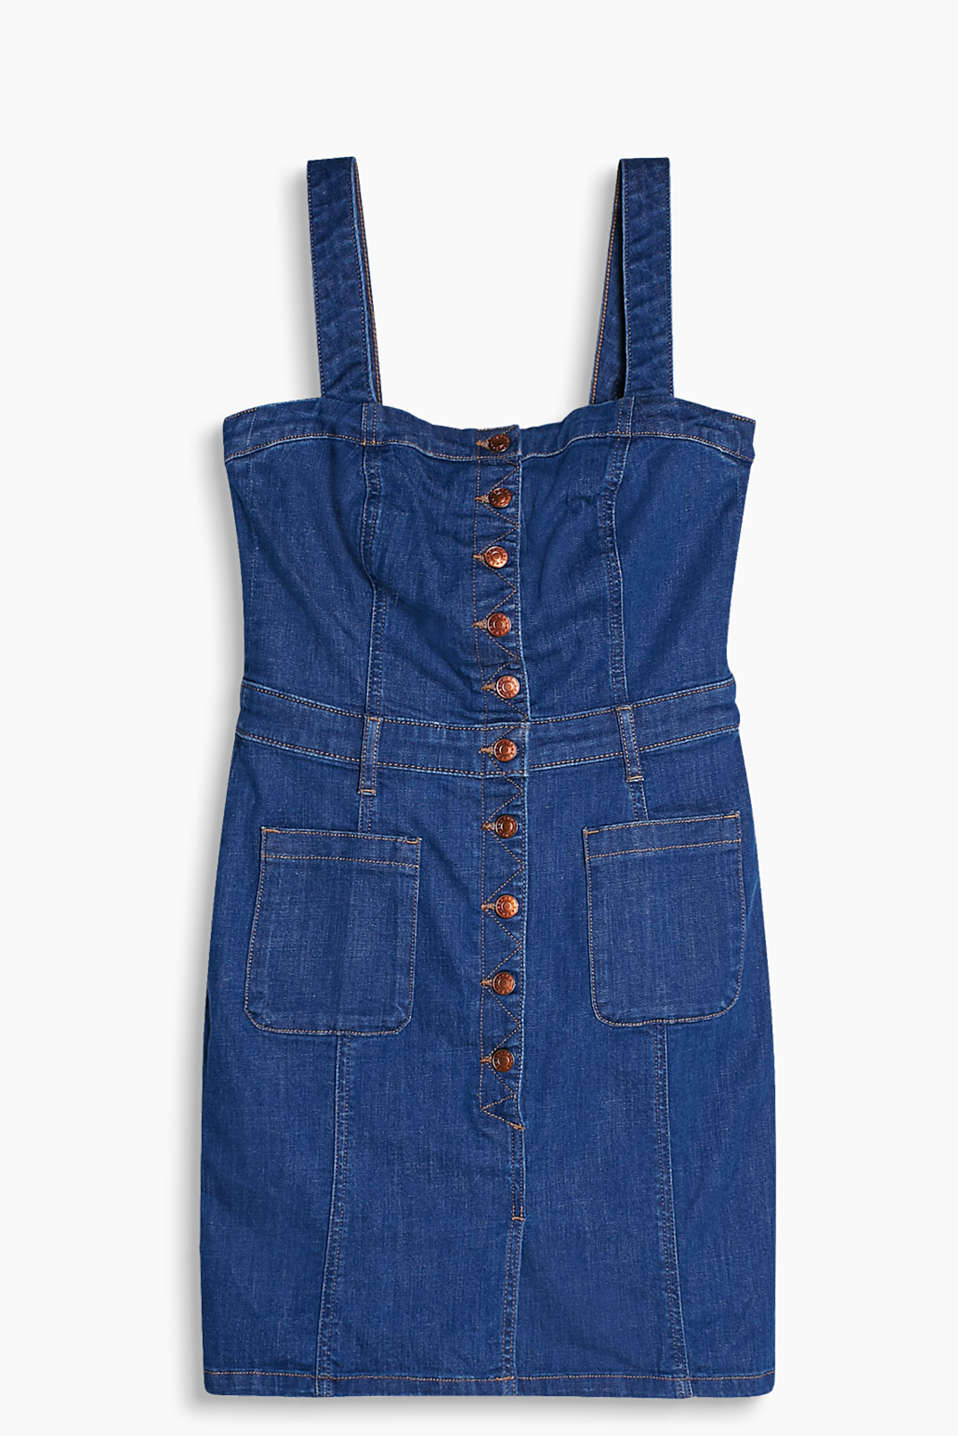 Fitted strap dress made of stretch denim with a button placket and patch pockets on the front